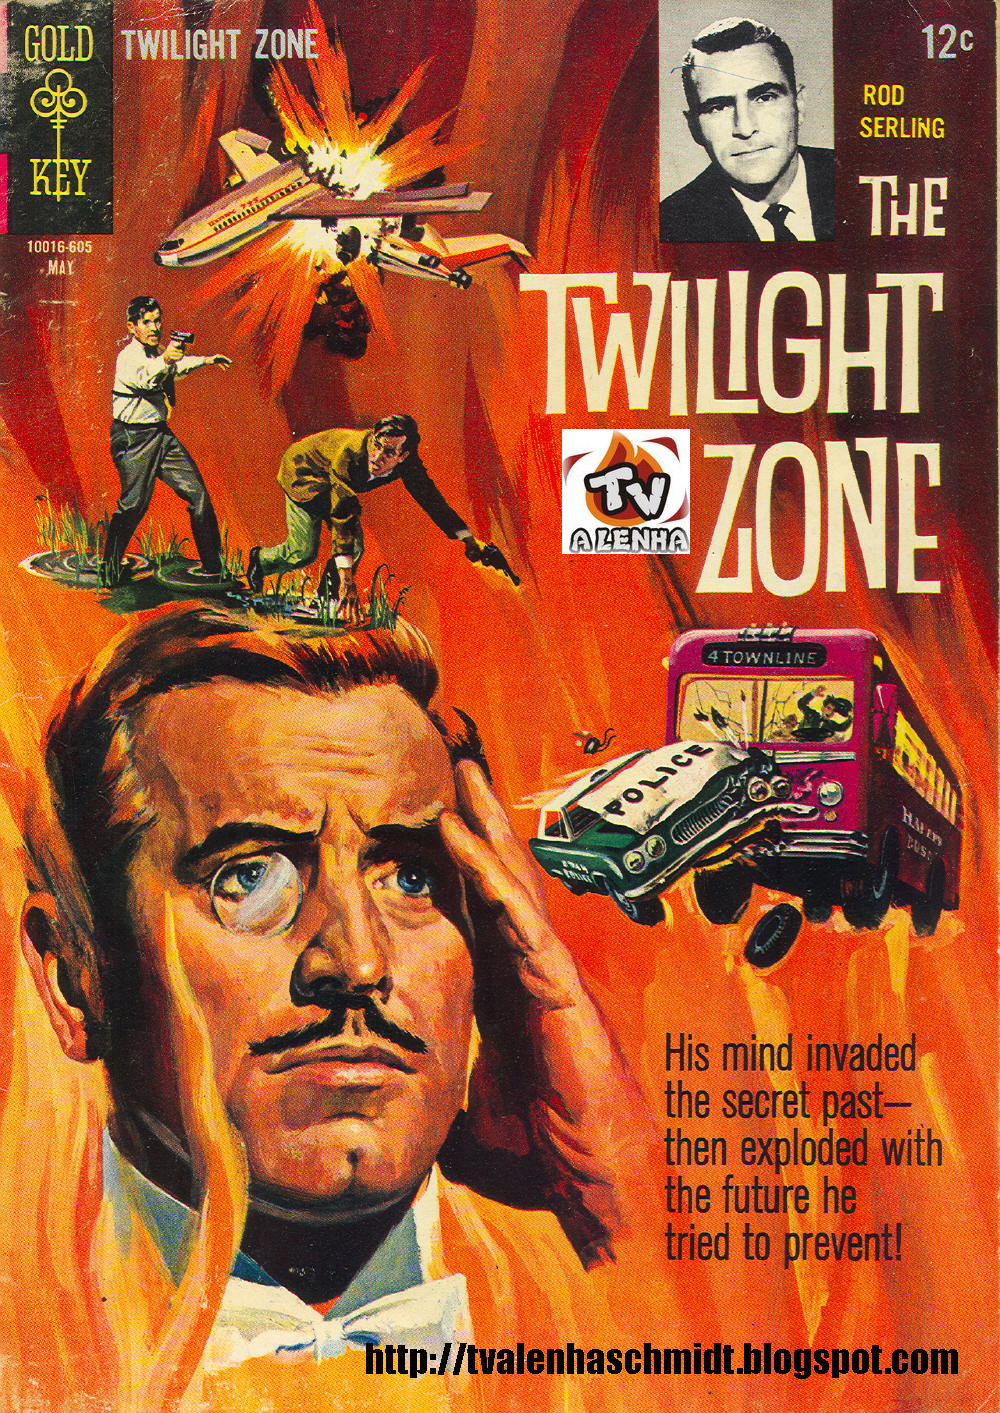 TWILIGHT ZONE 15  CLASSIC 60S  GOLD KEY COMICS